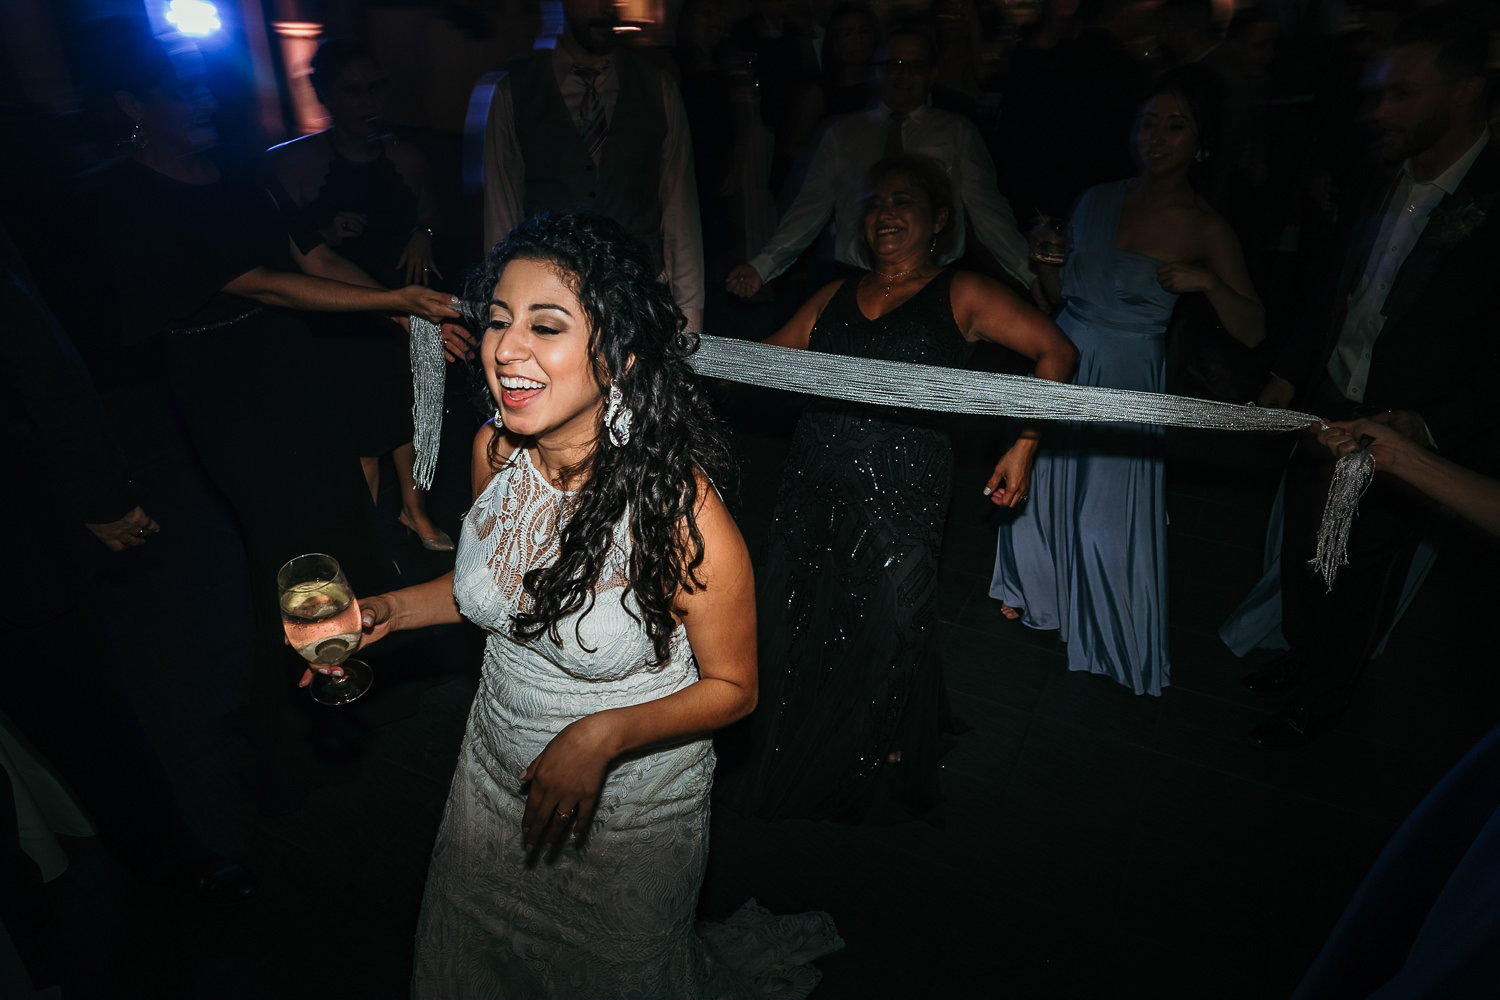 bride dancing holding drink